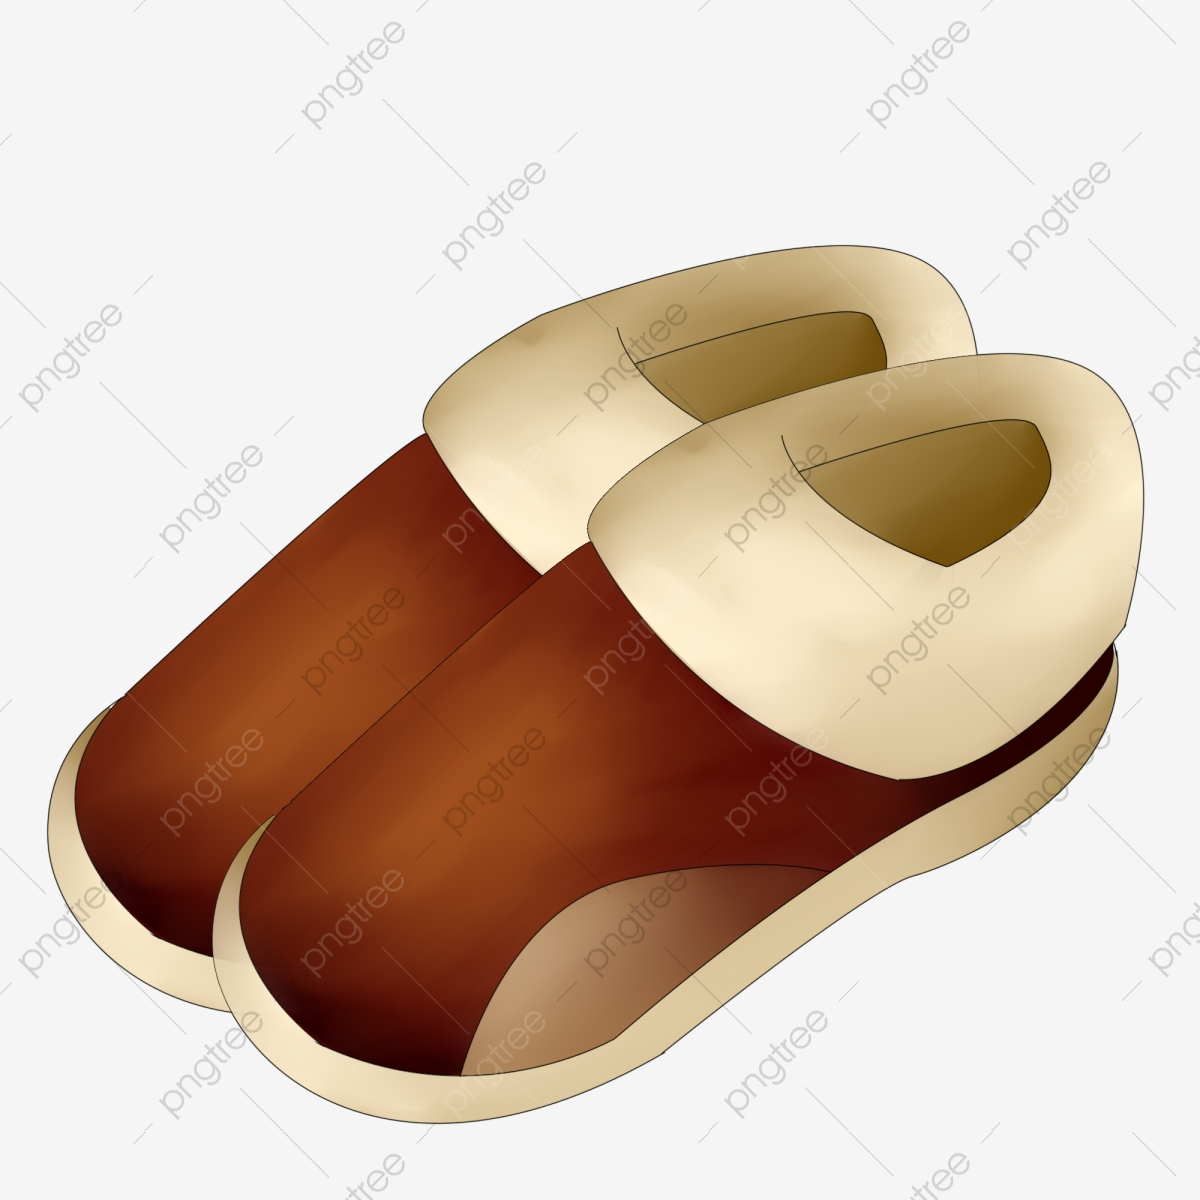 Brown Shoes White Fluff Hand Drawn Shoes Illustration Cartoon ... clipart library download